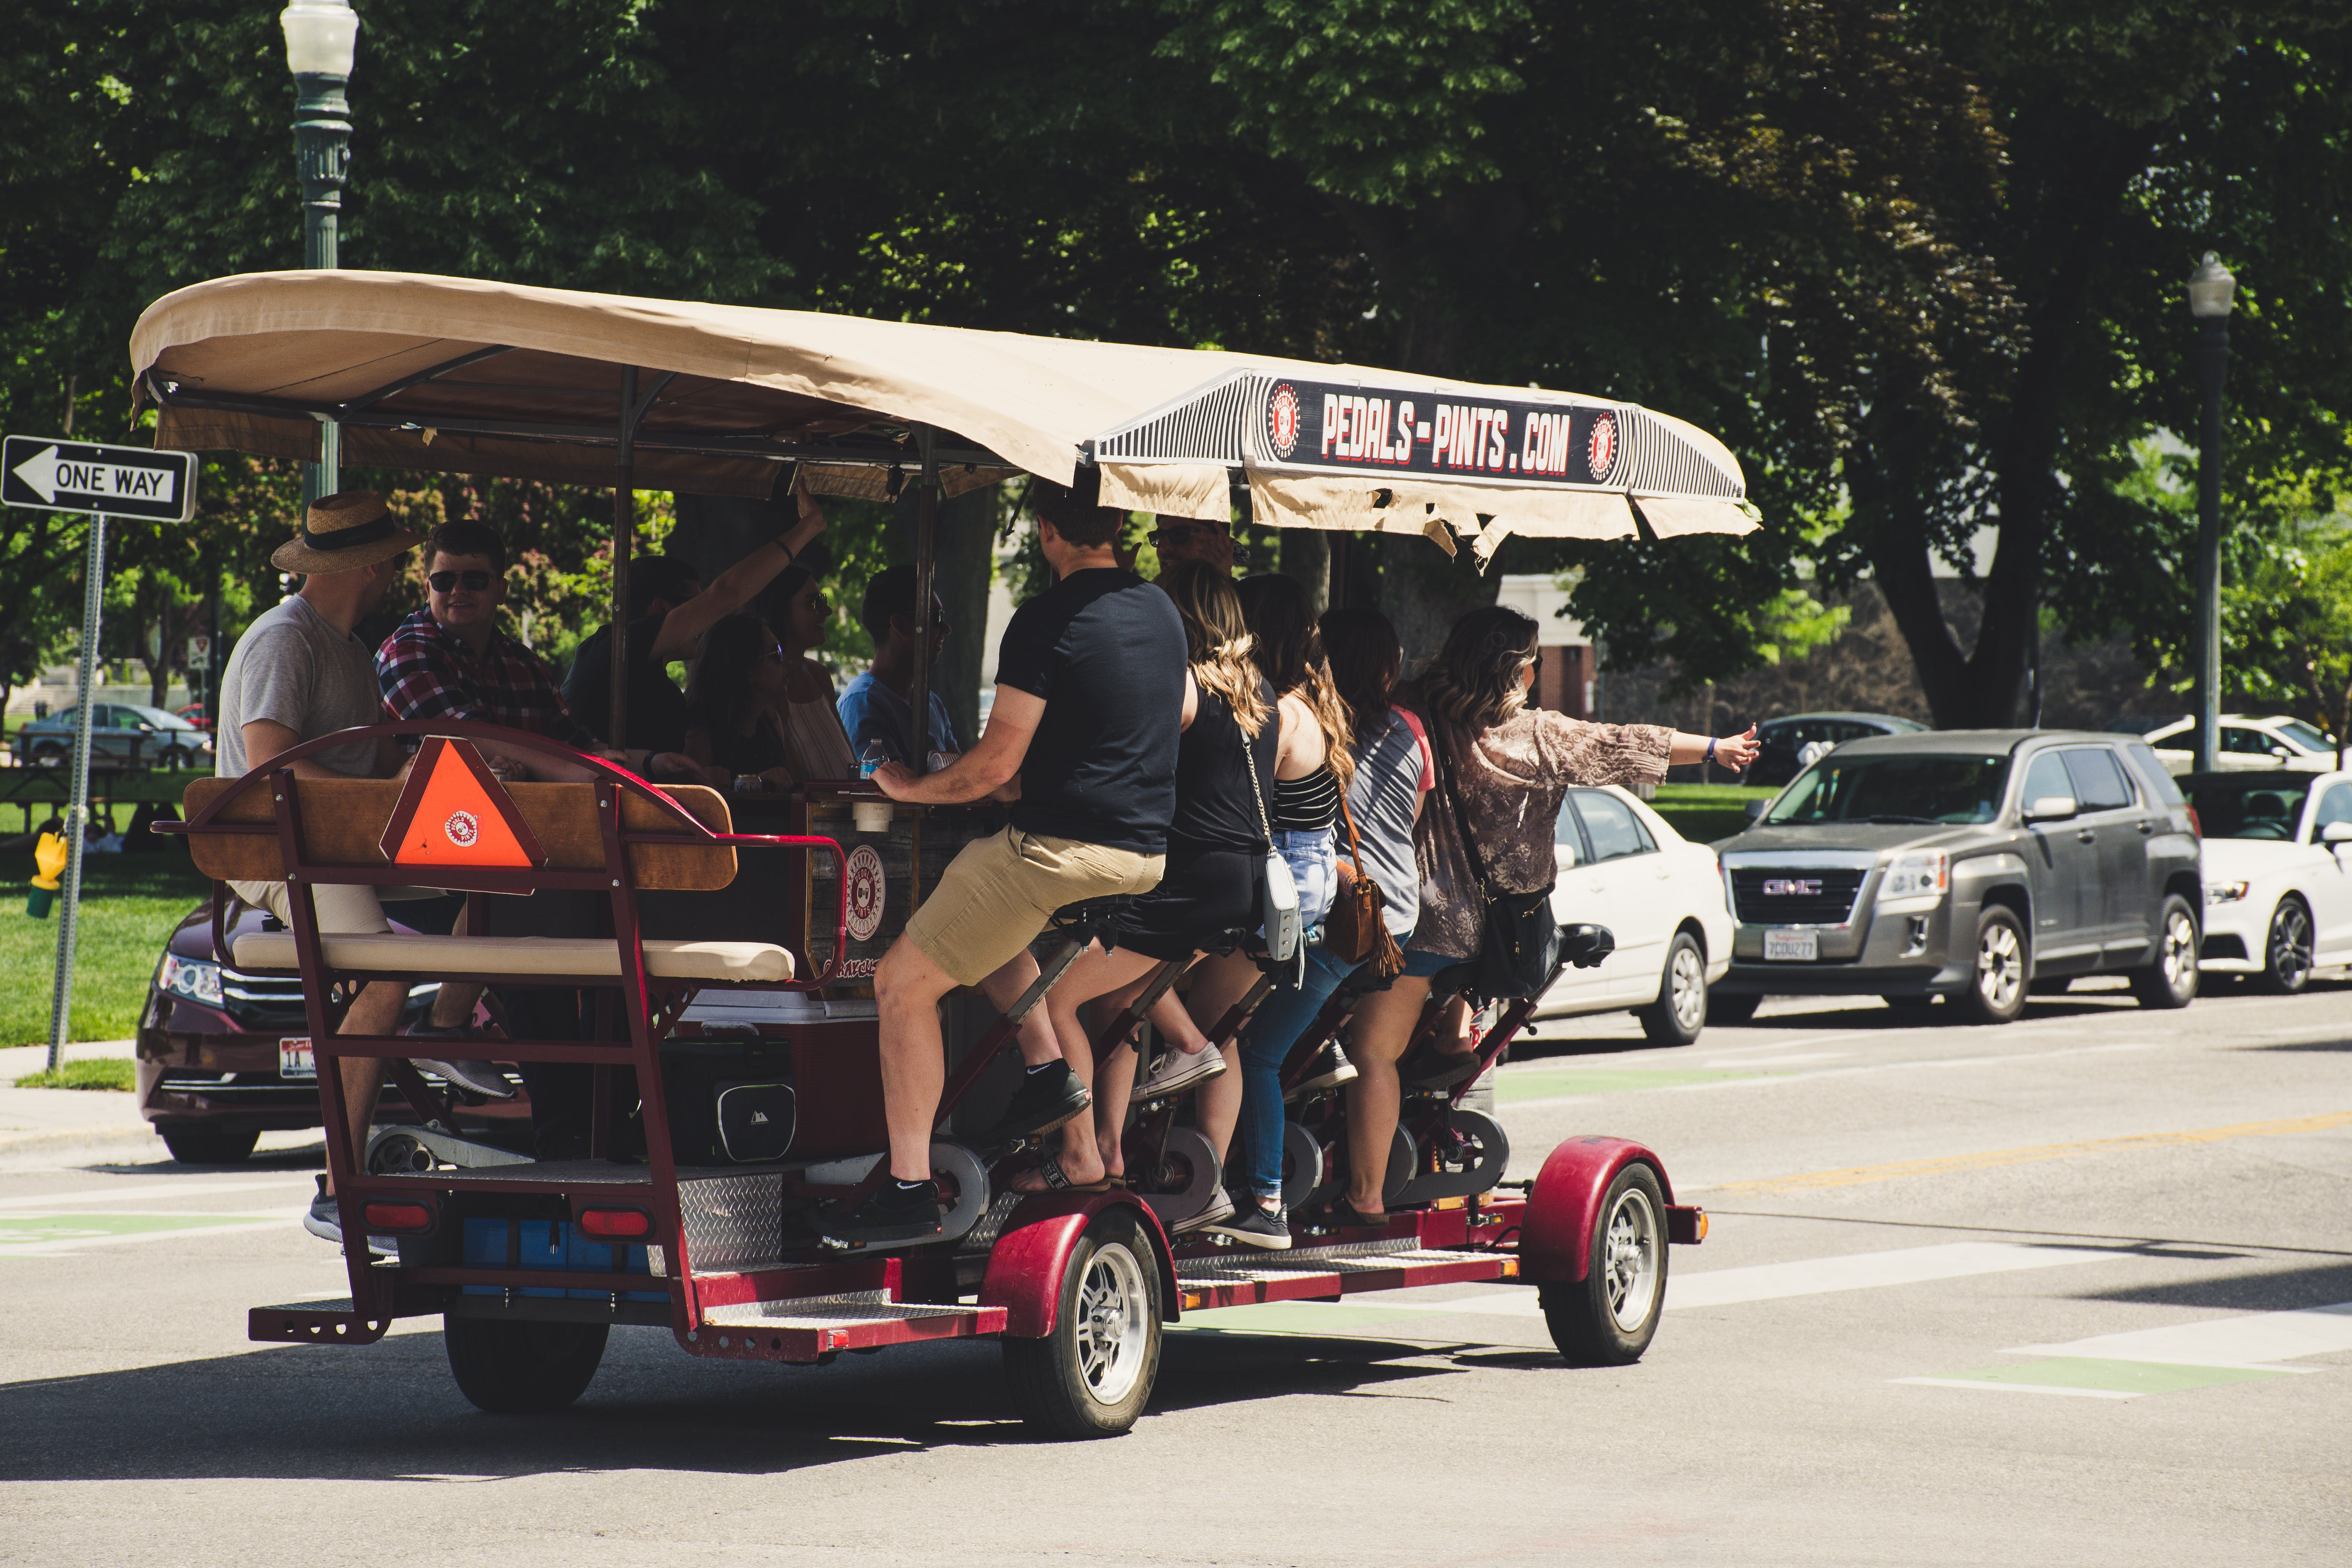 Photograph Of People Riding On Vehicle